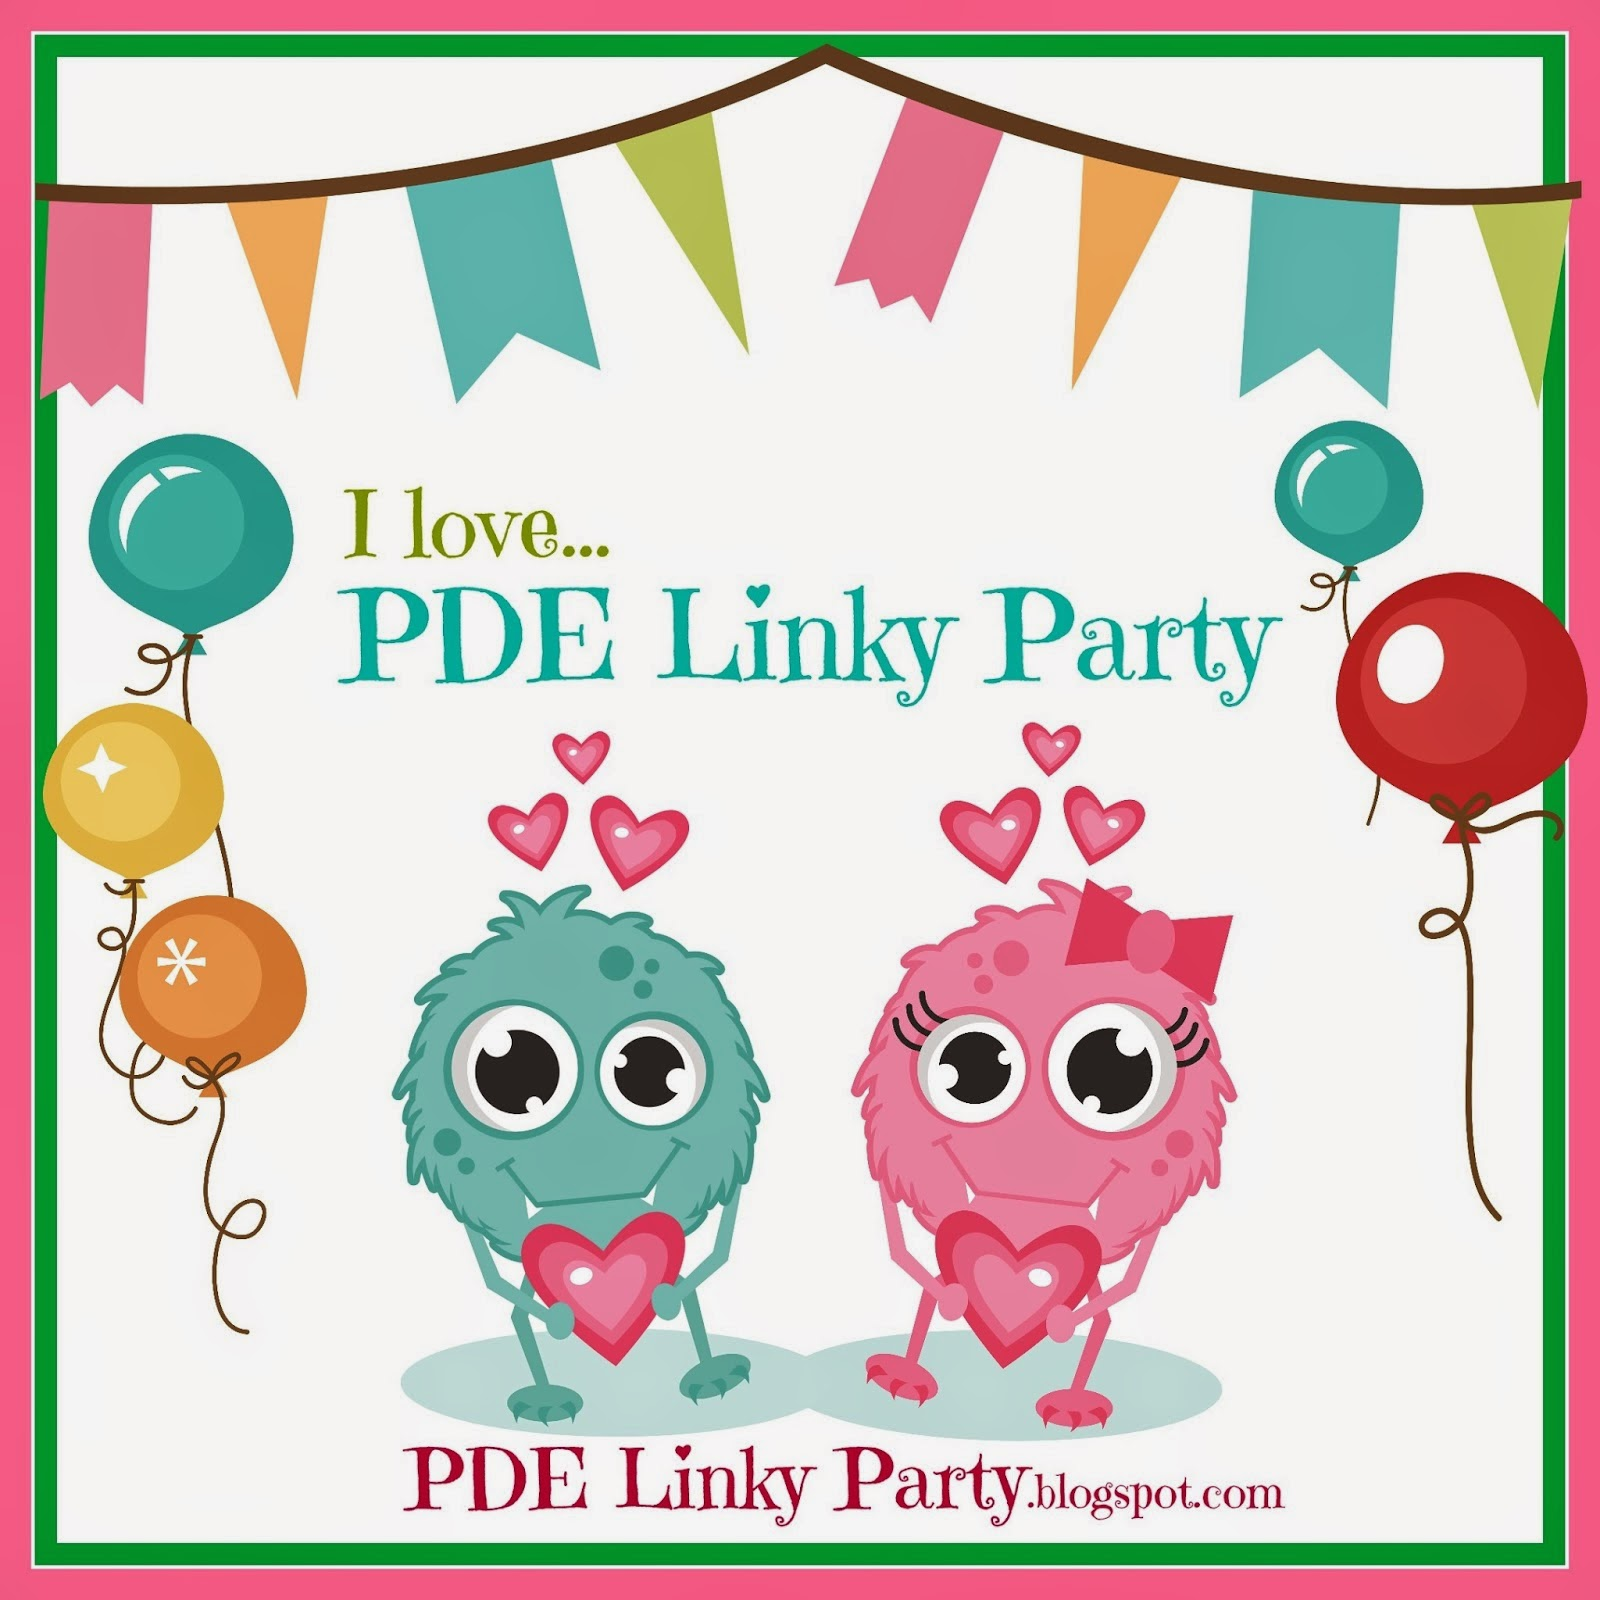 I LOVE PDE Linky Party